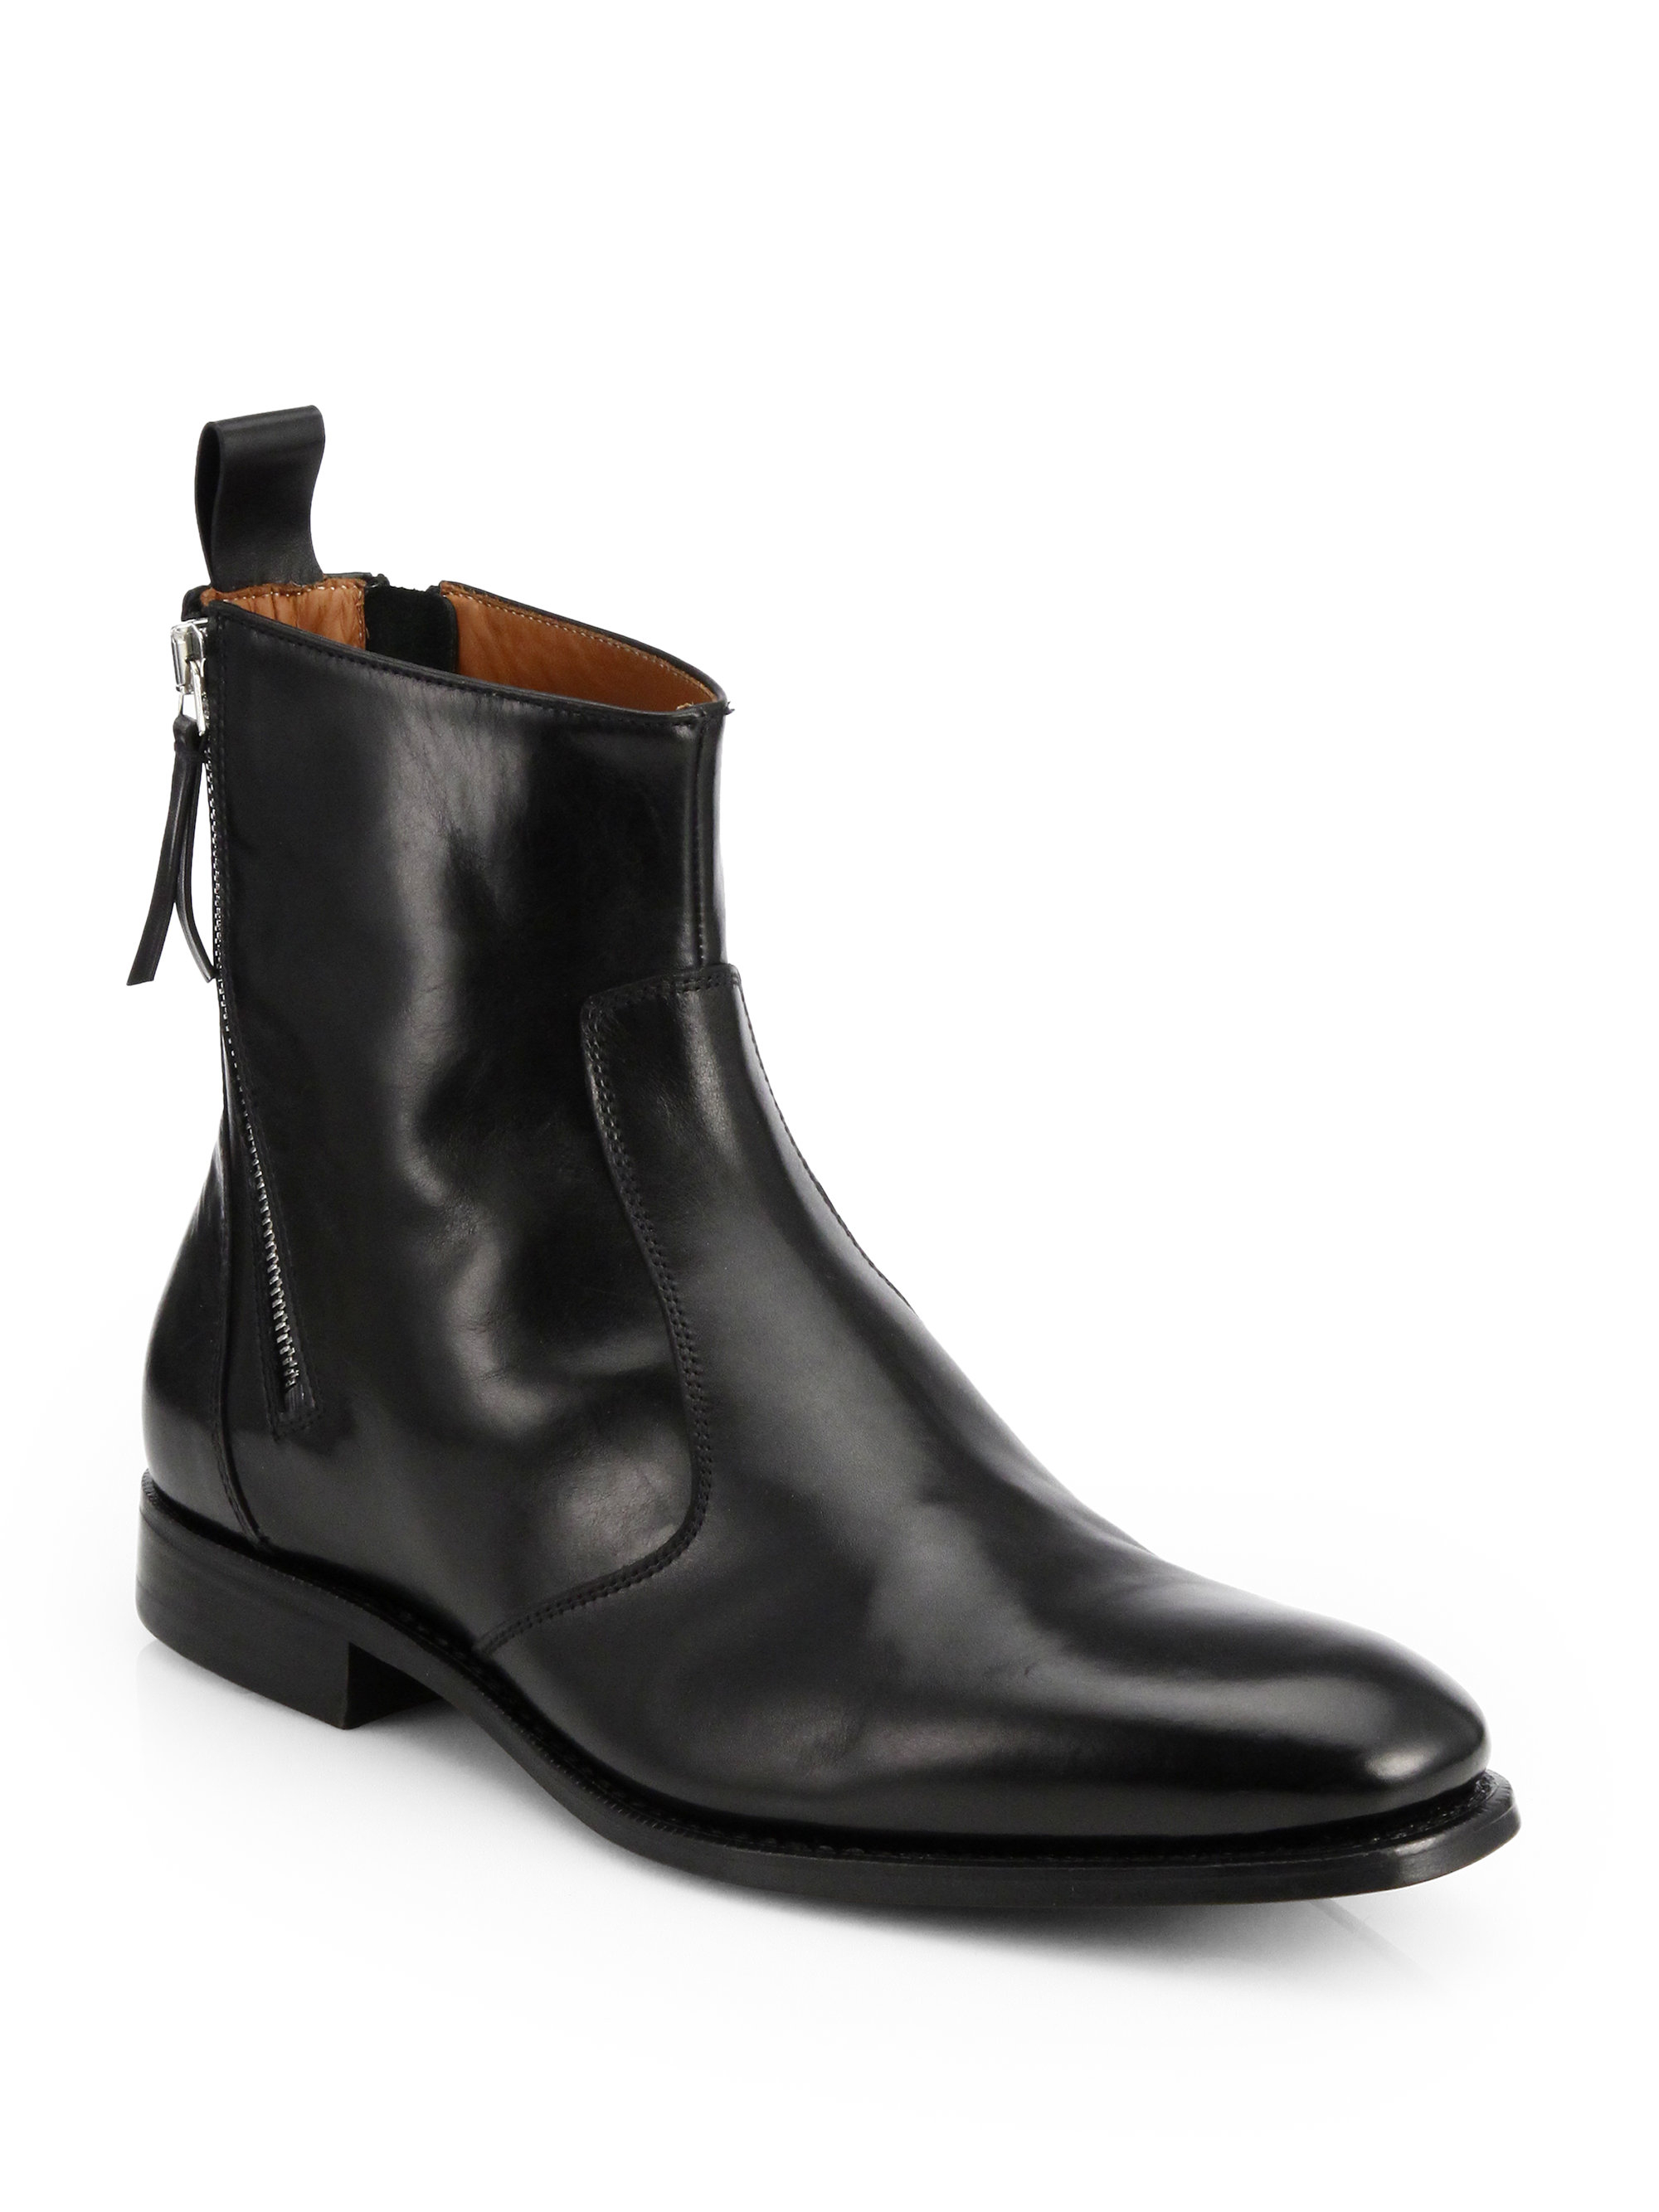 Givenchy Leather Tuxedo Boots In Black For Men Lyst